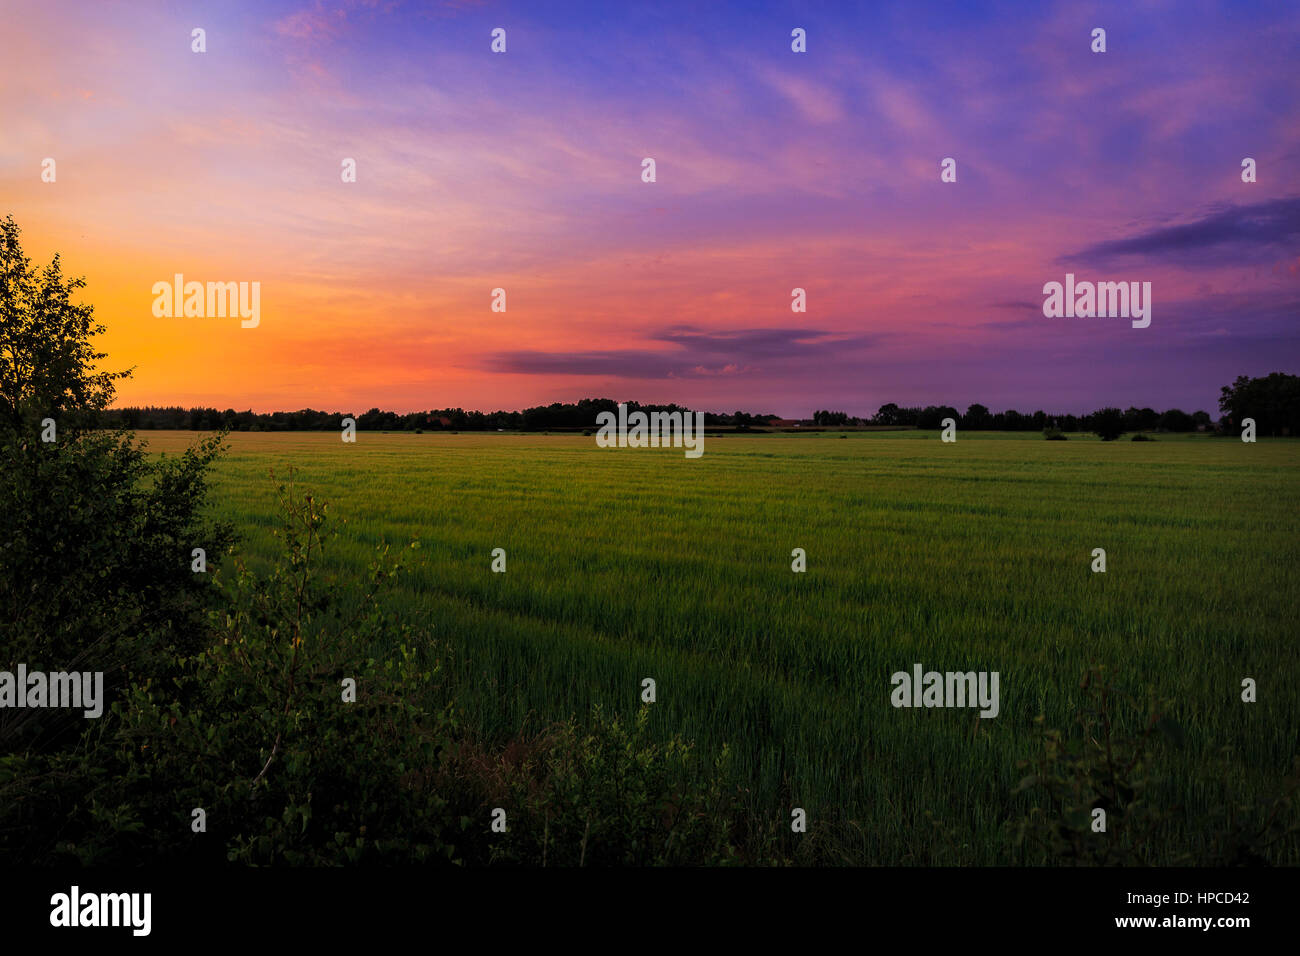 A colorful sunset in northern Germany - Stock Image